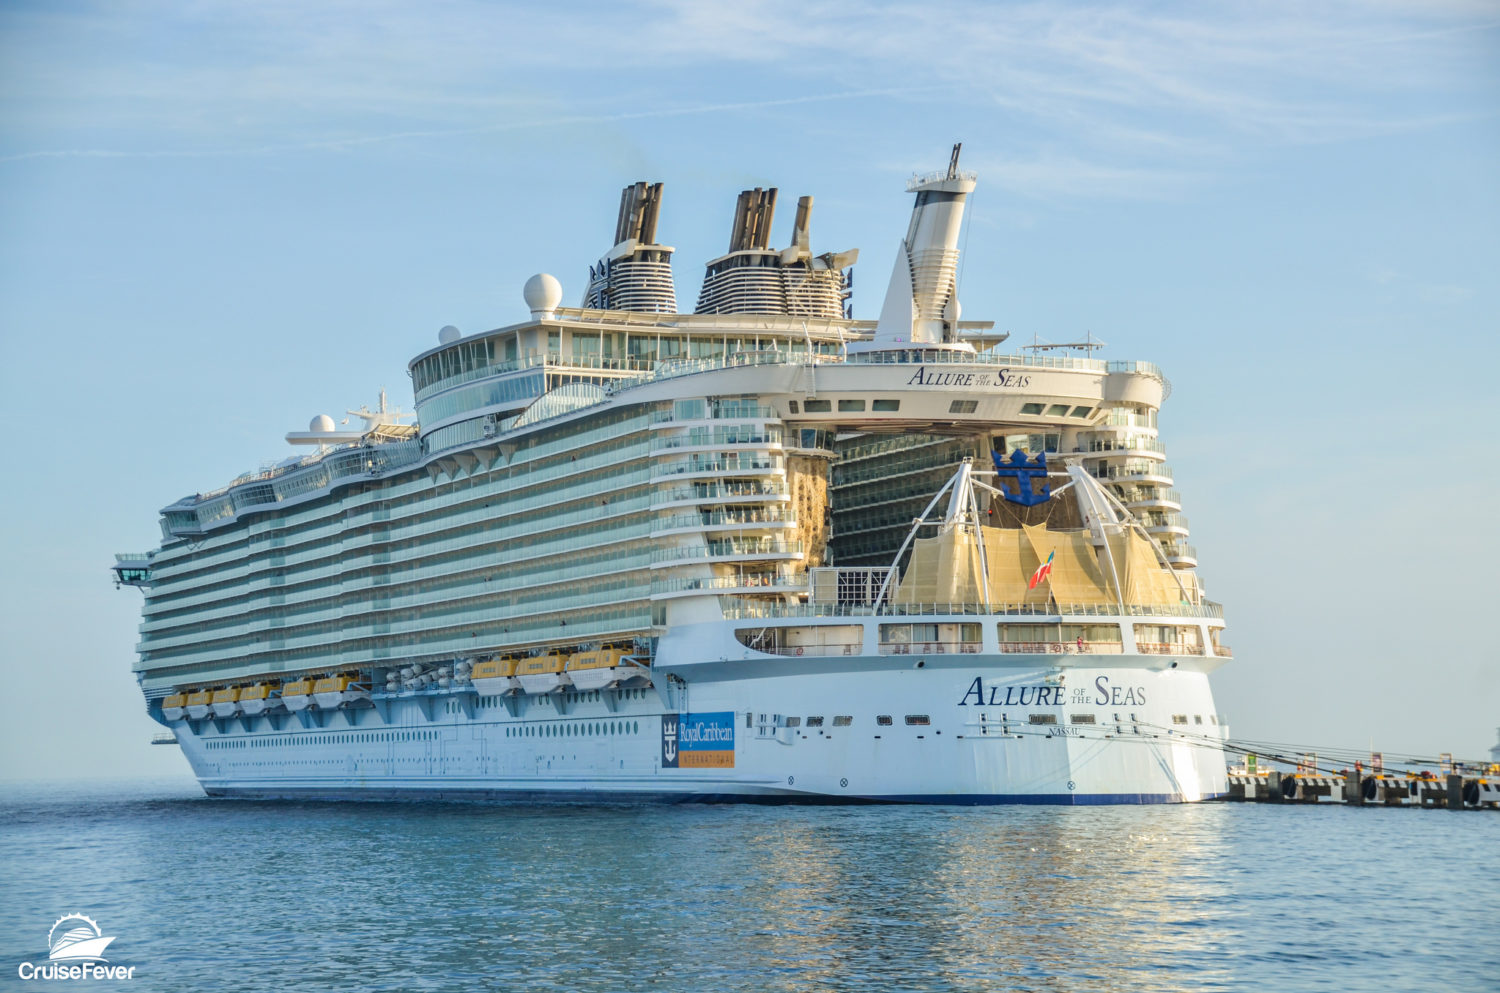 Worlds Largest Cruise Ship 2020.One Of The World S Largest Cruise Ships Will Sail To Europe